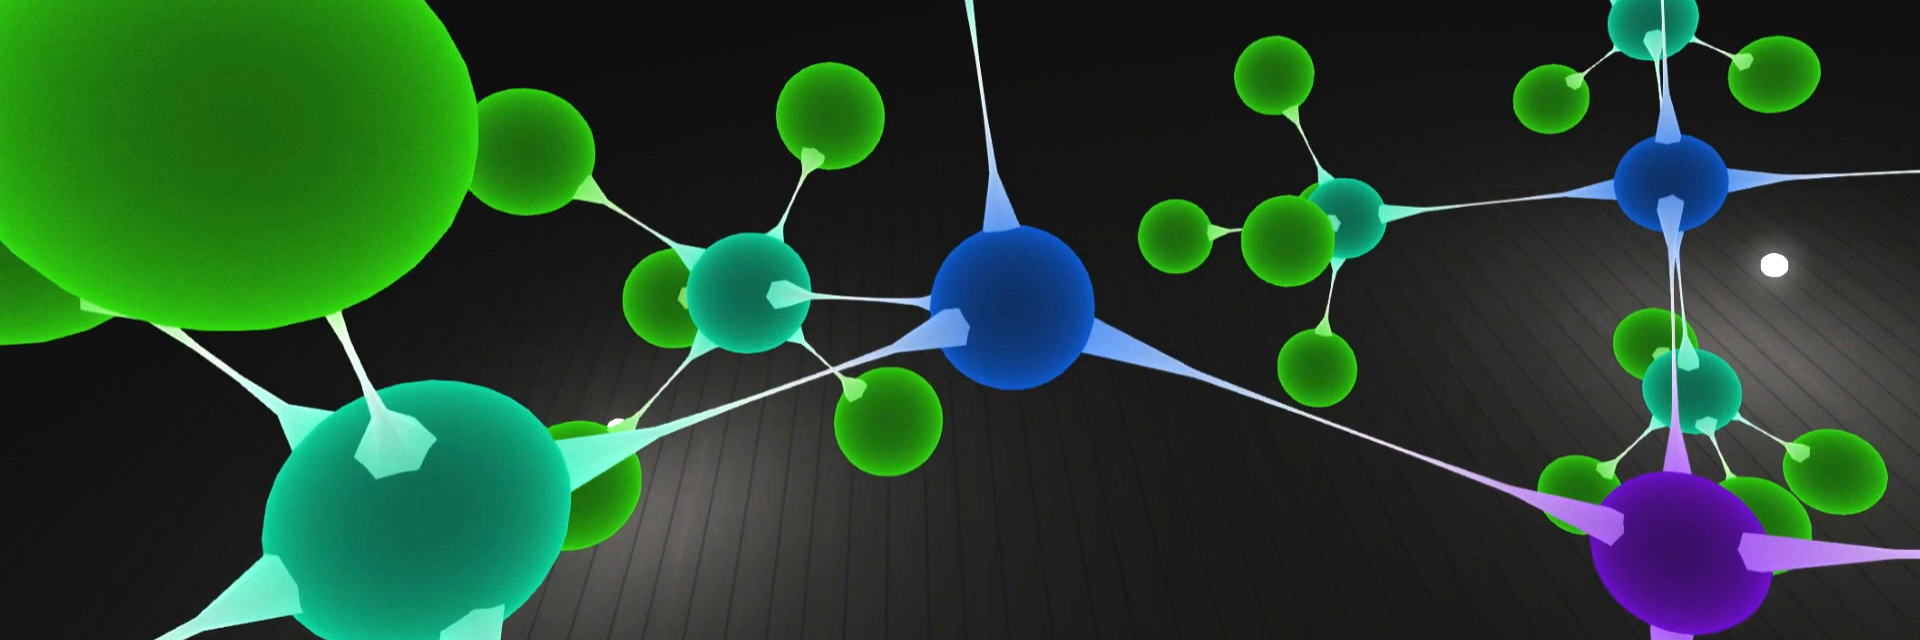 Force-Directed Graph VR